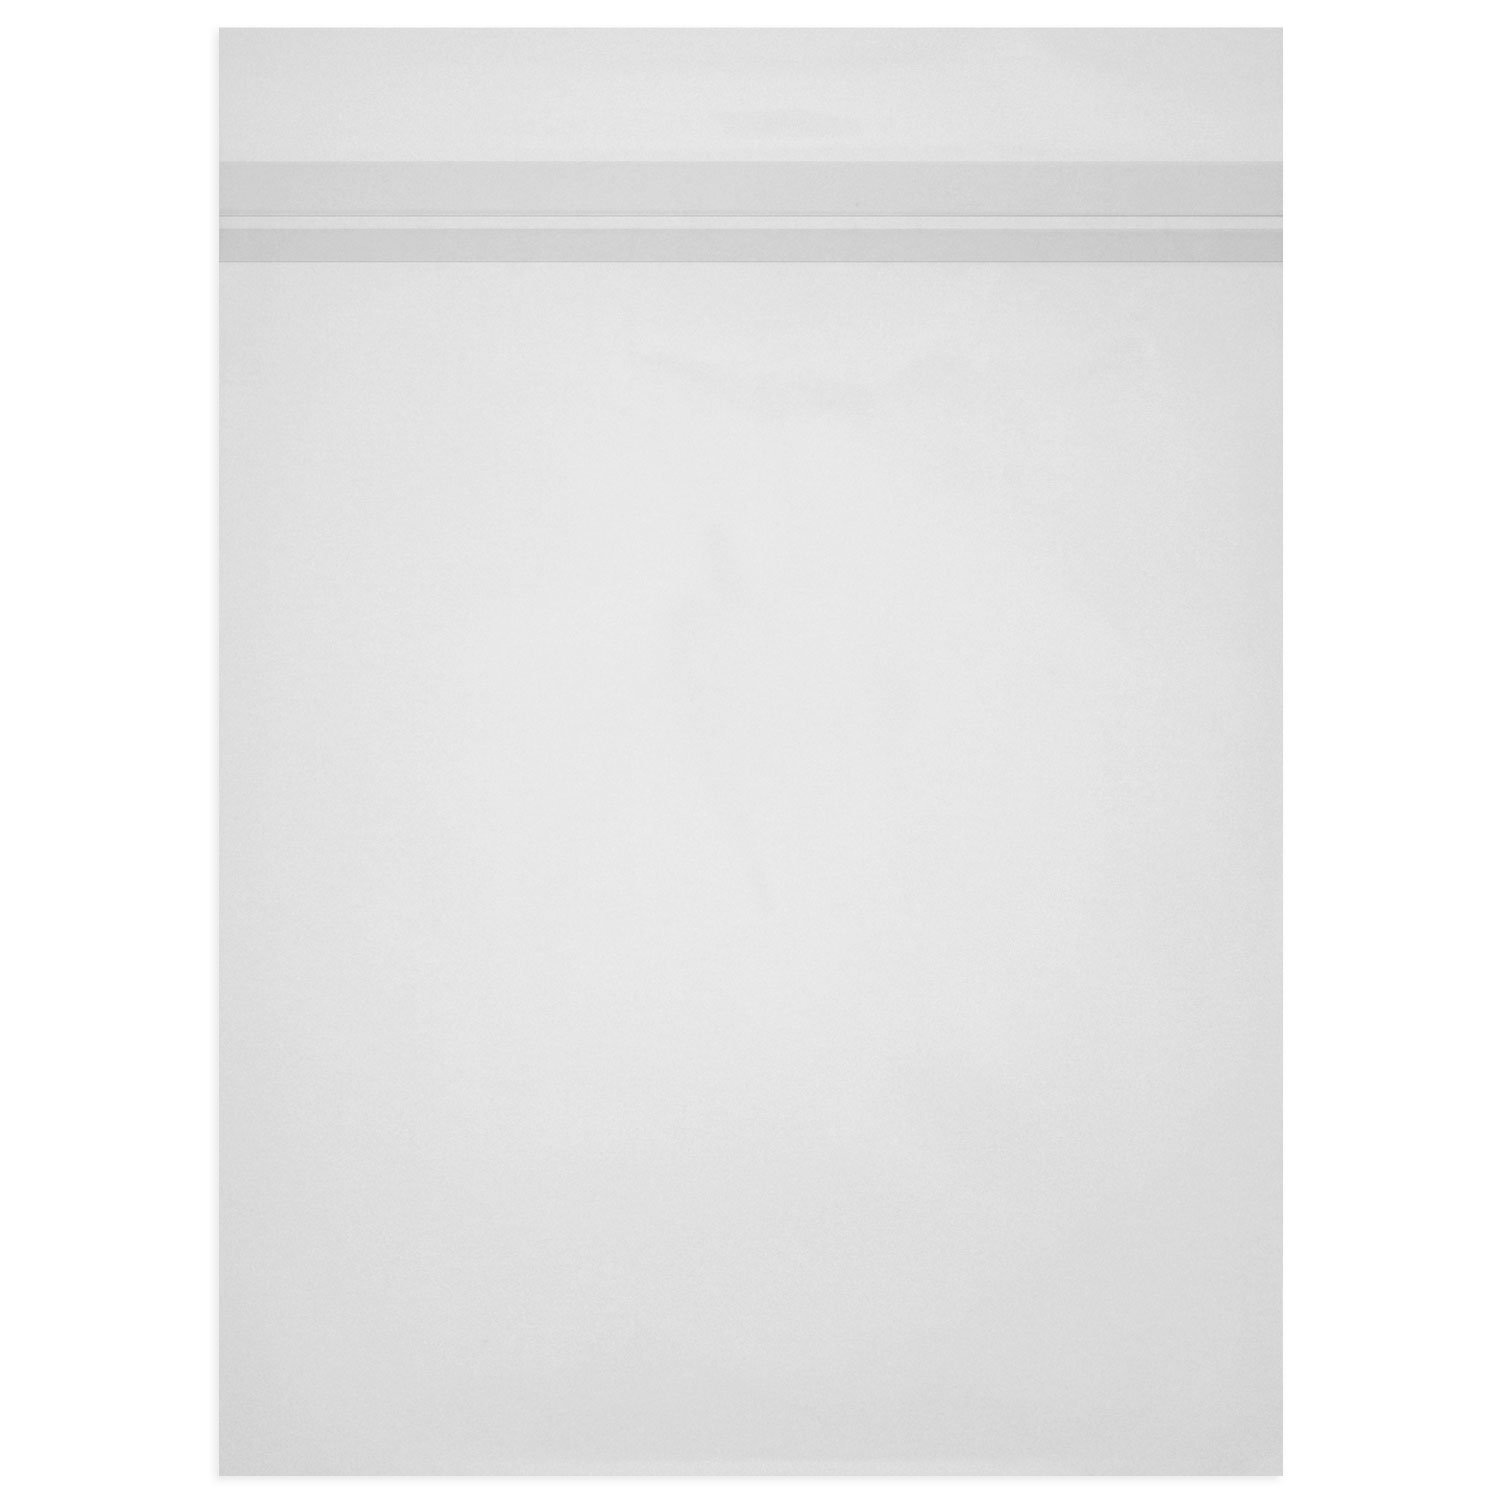 US Art Supply Art Mats Acid-Free Pre-Cut 16x20 Black Picture Mat Matte Sets. Includes a Pack of 25 White Core Bevel Cut Mattes for 11x14 Photos, Pack of 25 Backers & 25 Clear Sleeve Bags by US Art Supply (Image #4)